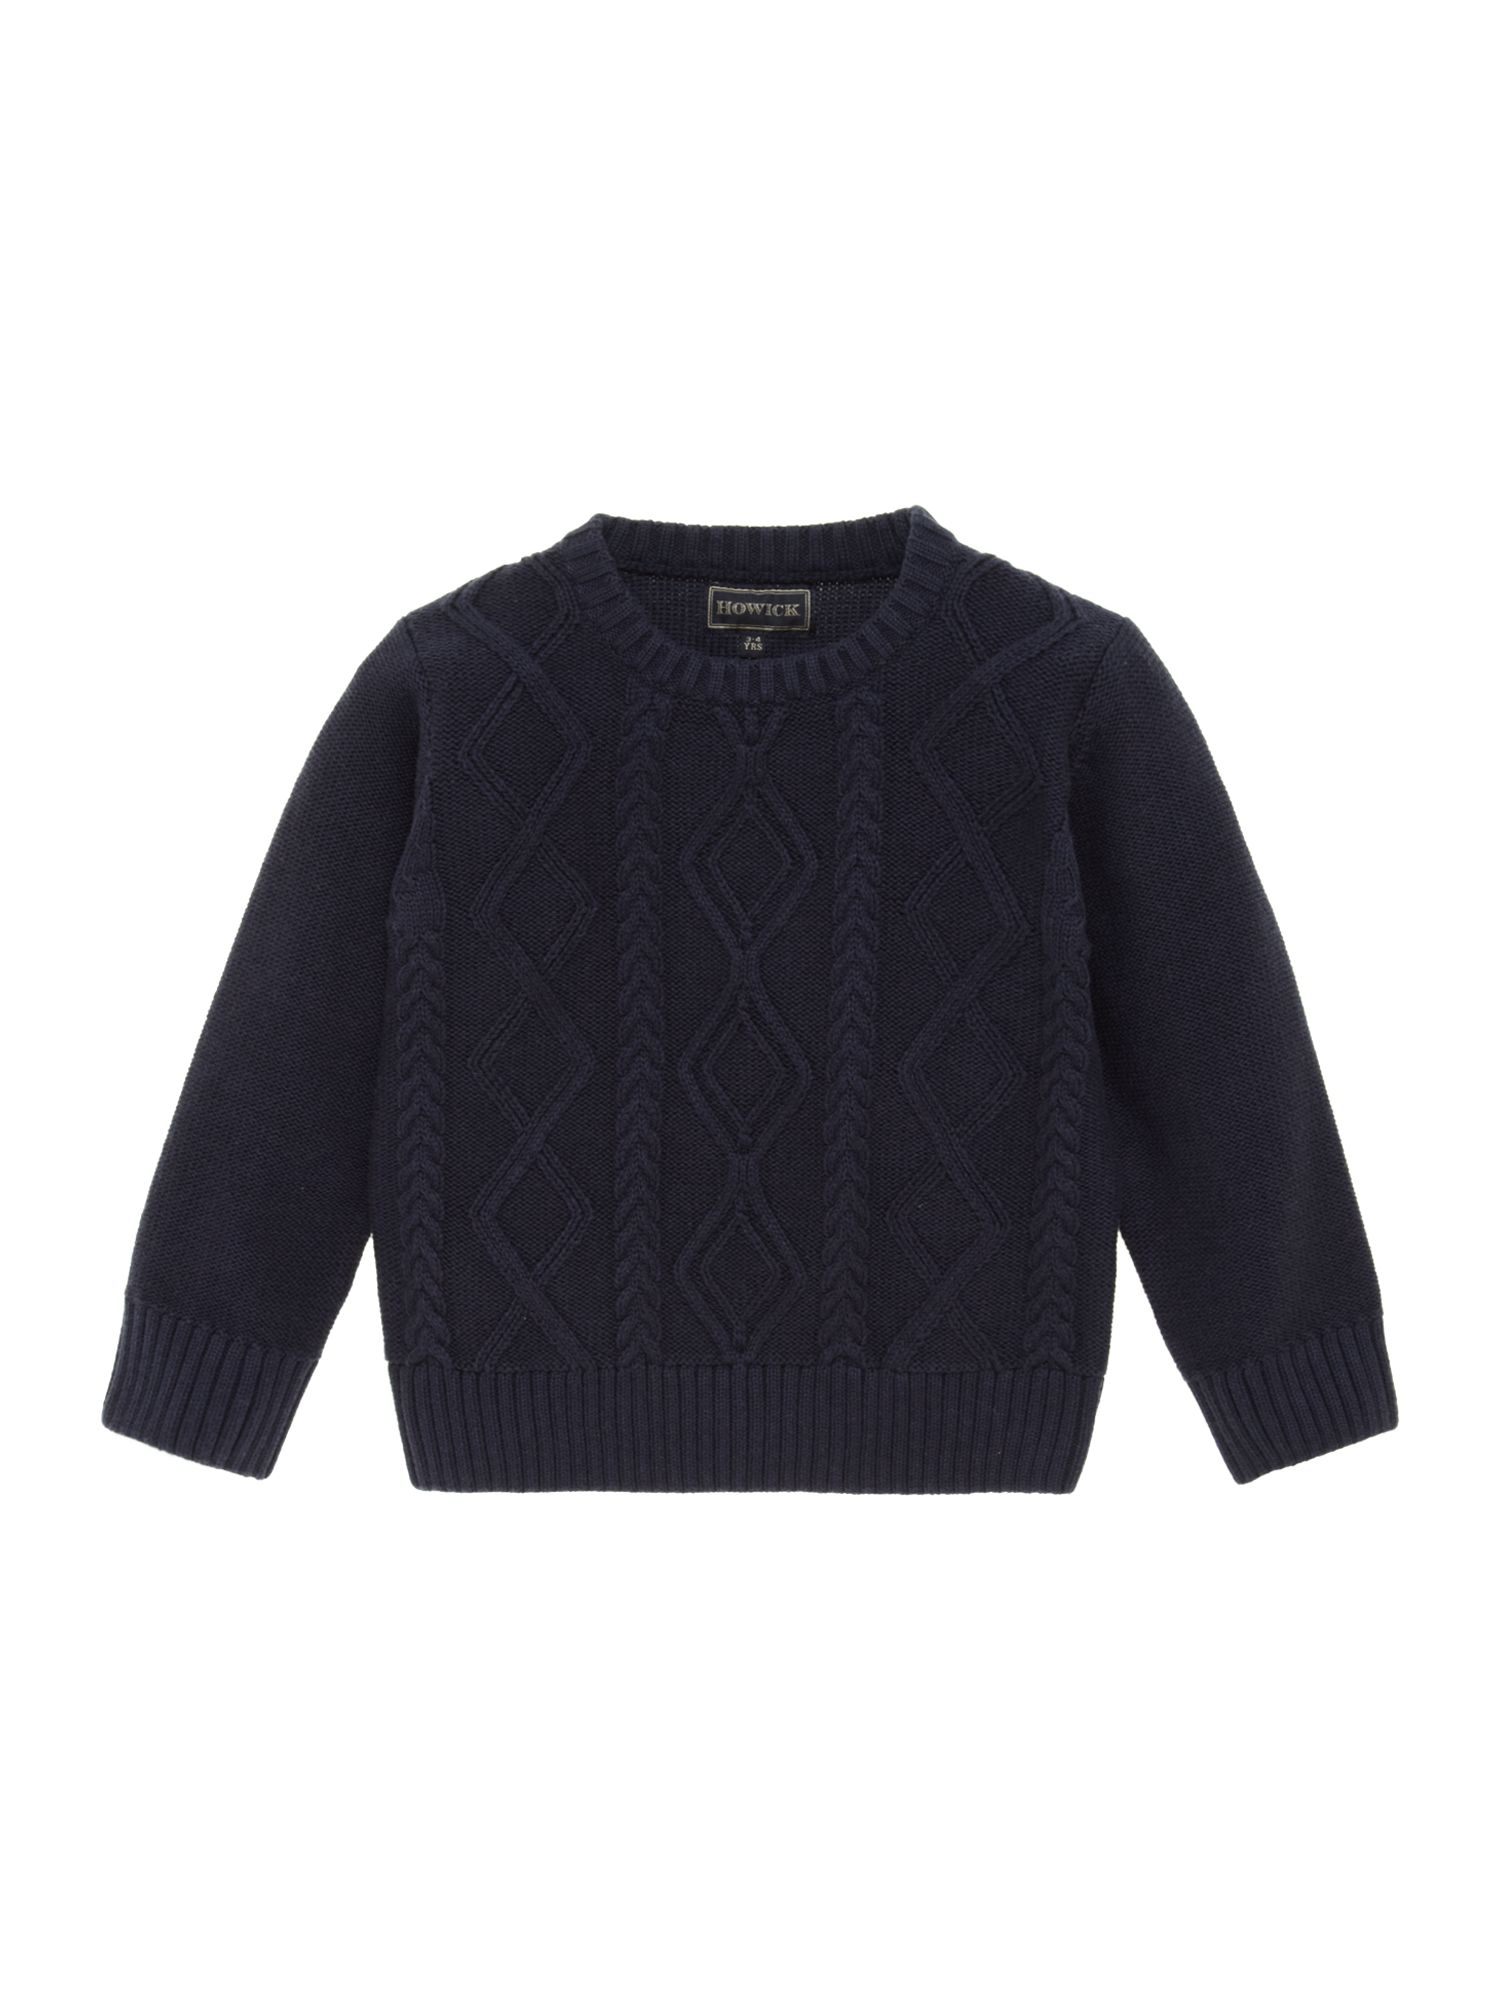 Boys cable crew neck jumper